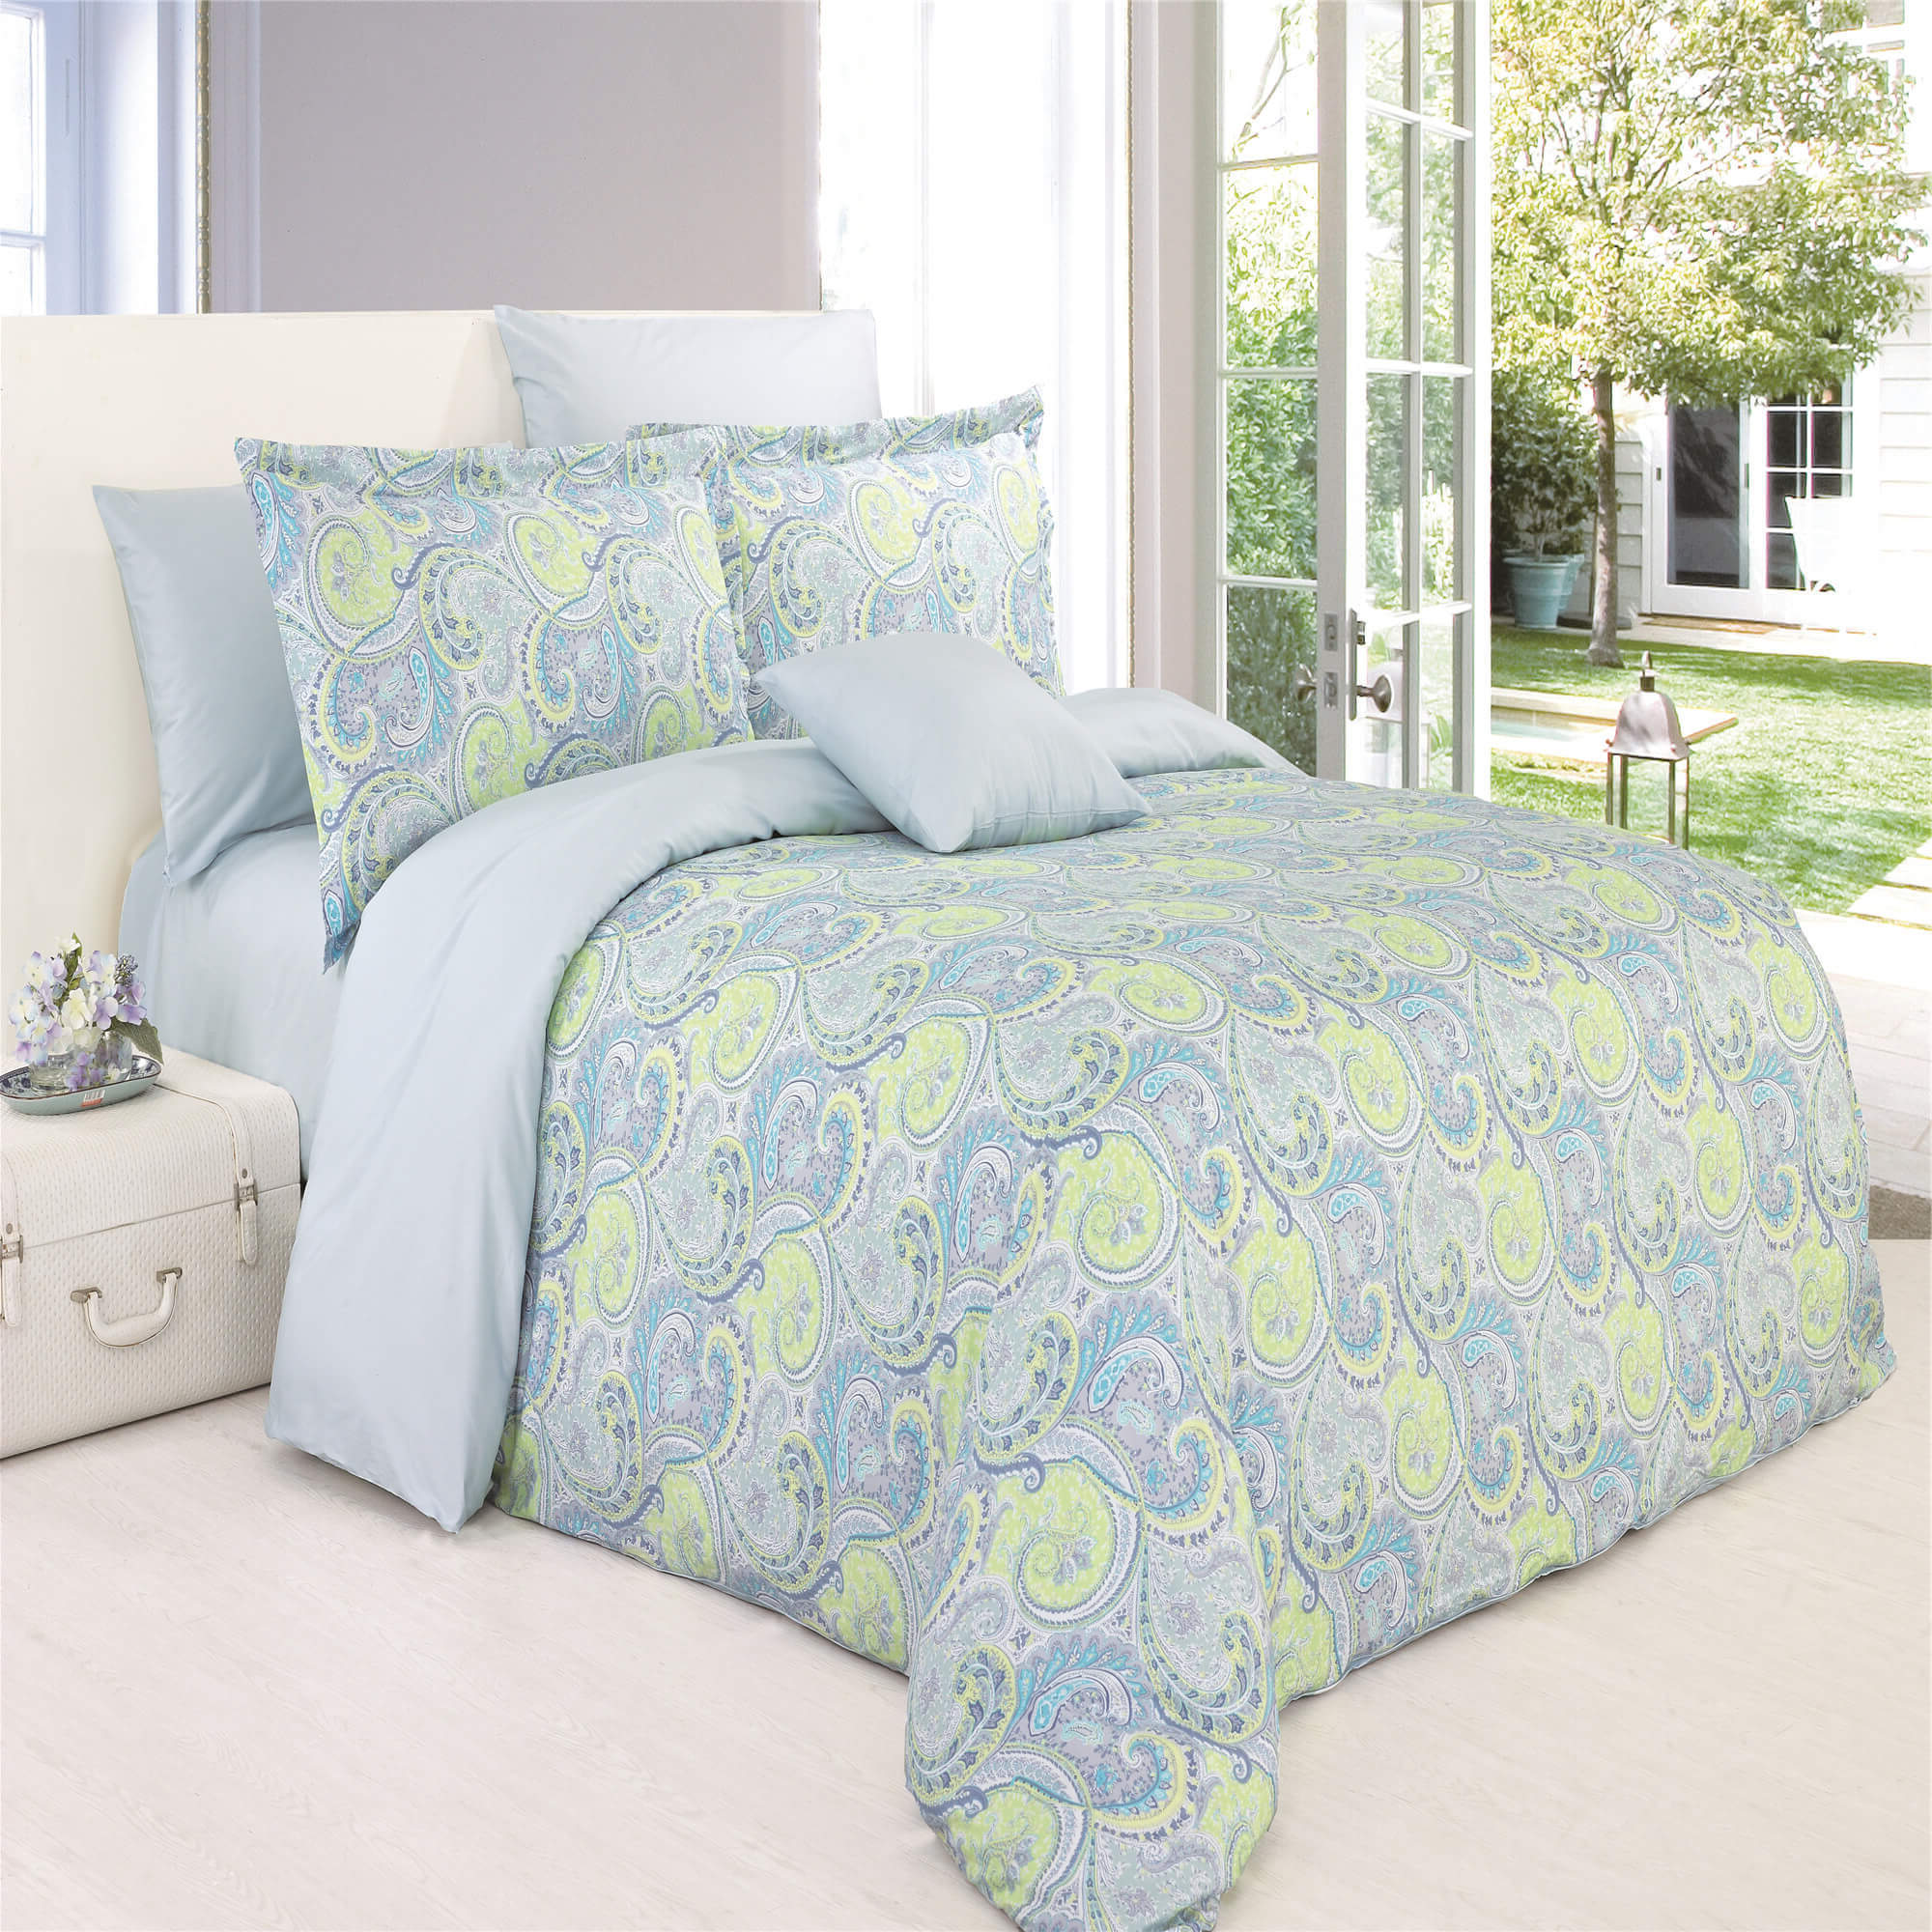 Cheery Sheet Set